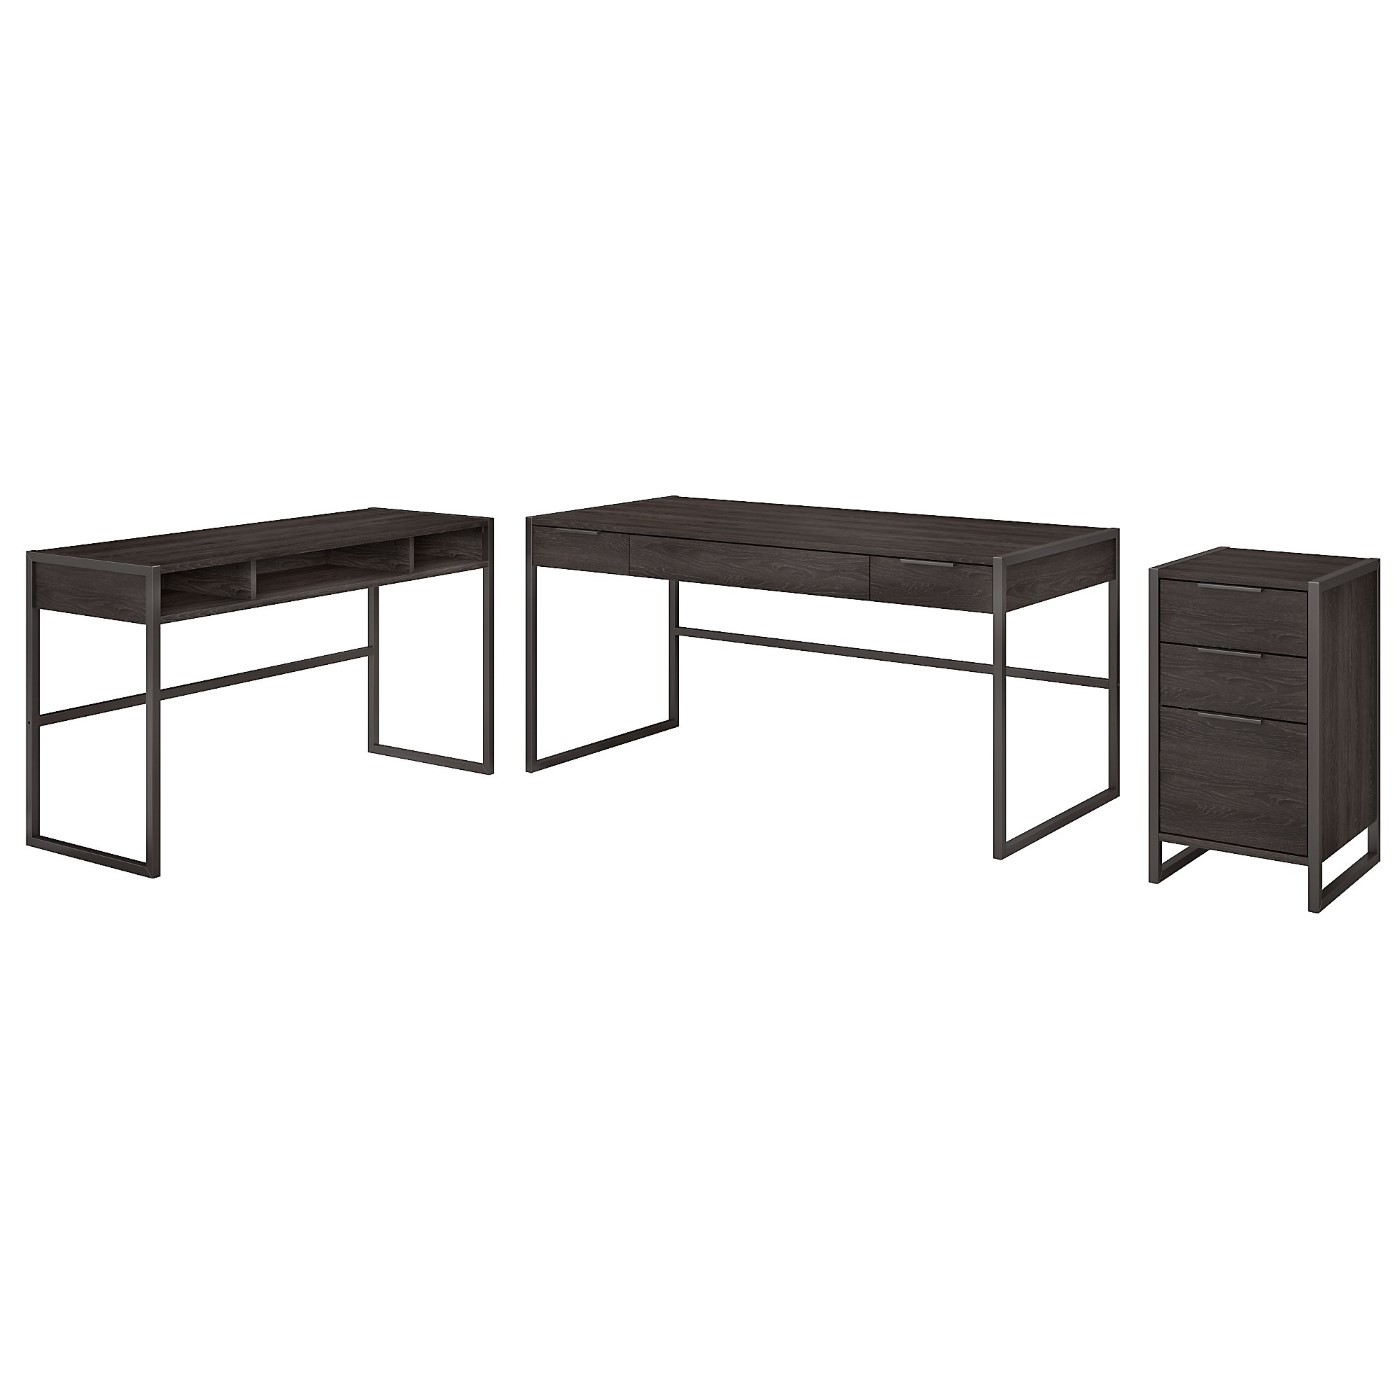 The kathy ireland� Atria 60W L Shaped Desk with 3 Drawer File Cabinet is Sustainable Eco Friendly Furniture. Includes Free Shipping! 30H x 72L x 72W.